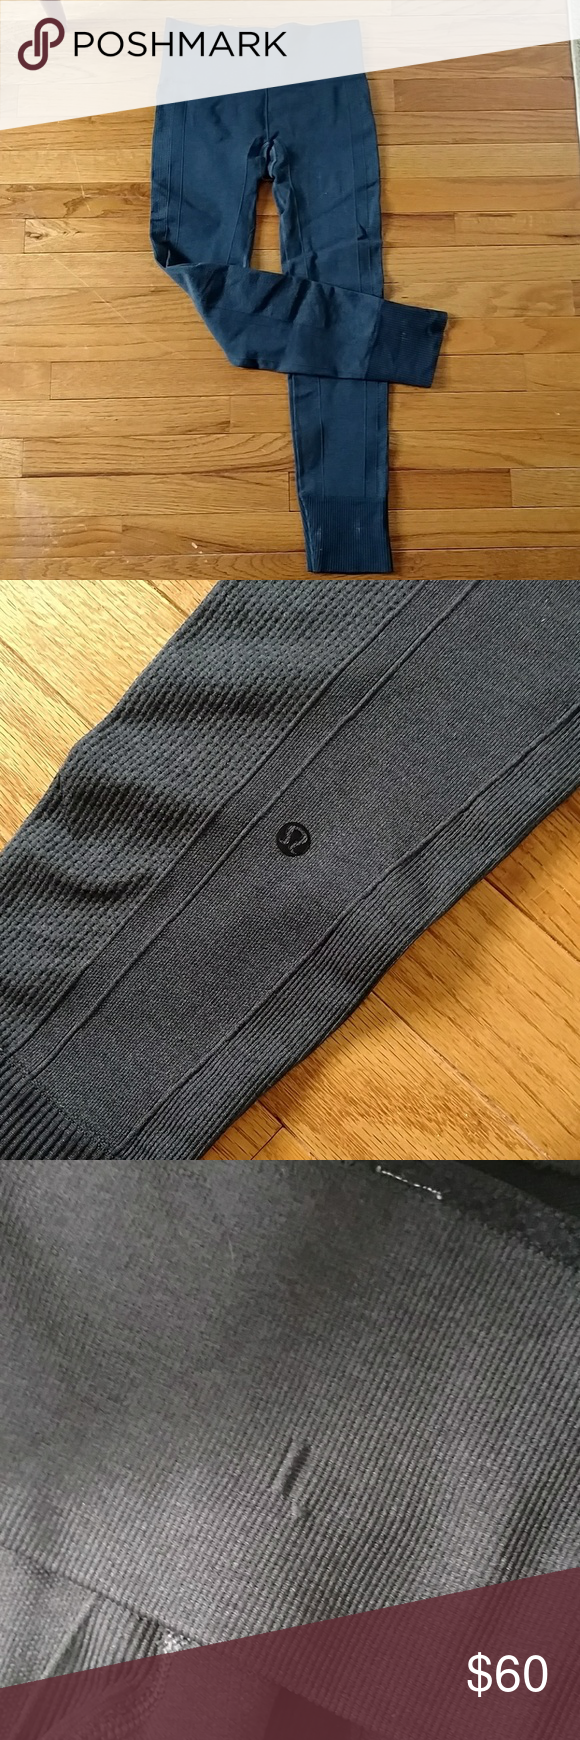 ceffb9c37929e6 Lululemon Ebb to Street Pant Perfect condition, super thick material. These  pants are absolutely